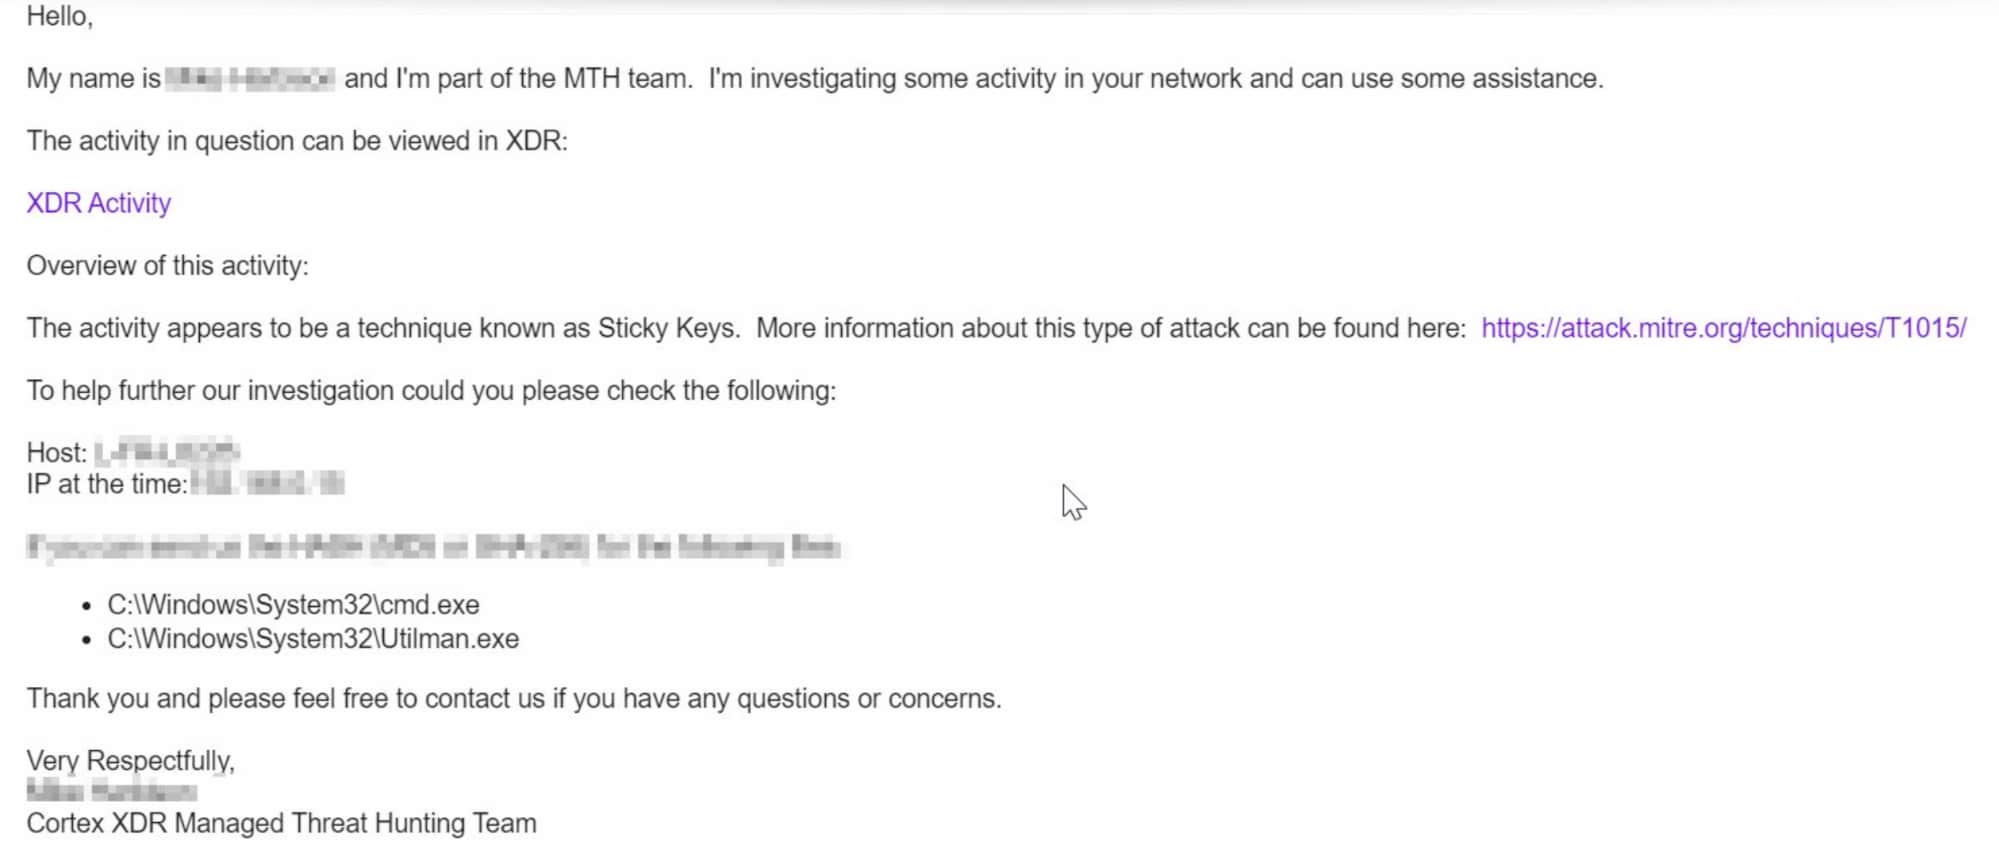 This screenshot of an email reads: Hello, My name is [OBSCURED] and I'm part of the MTH team. I'm investigating some activity in your network and can use some assistance. The activity in question can be viewed in XDR: XDR Activity. Overview of the activity: The activity appears to be a technique known as Sticky Keys. More information about this type of attack can be found here: [web address]. To help further our investigation could you please check the following: [Obscured details]. Thank you and please feel rfree to contact us if you have any questions or concerns. Very Respectfully, [Name Obscured], Cortex XDR Managed Threat Hunting Team